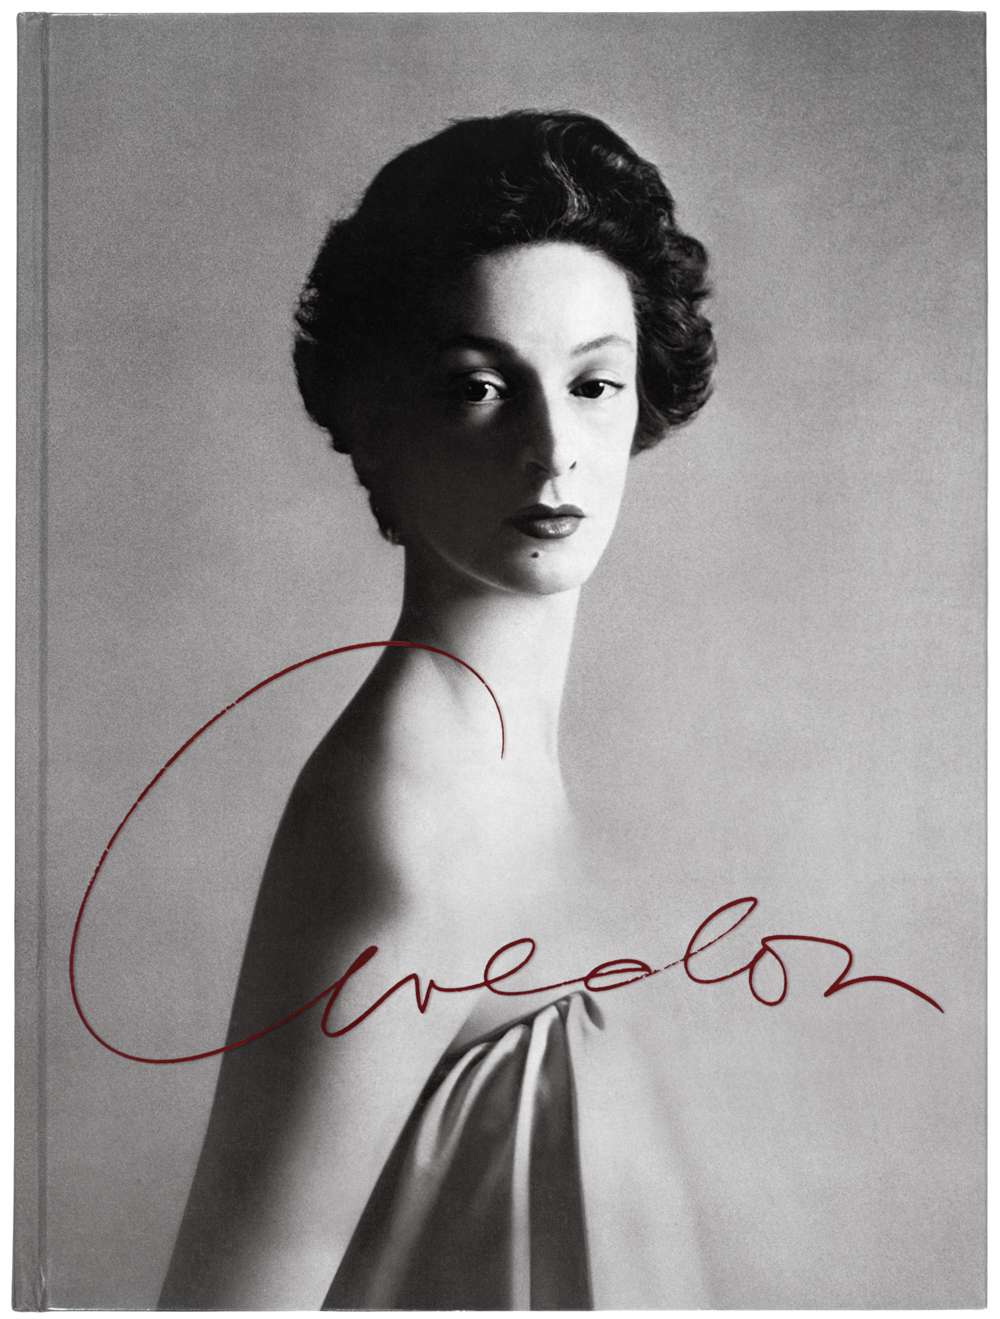 Avedon, Photographs 1947-1977, (1978) text by Harold Brodkey